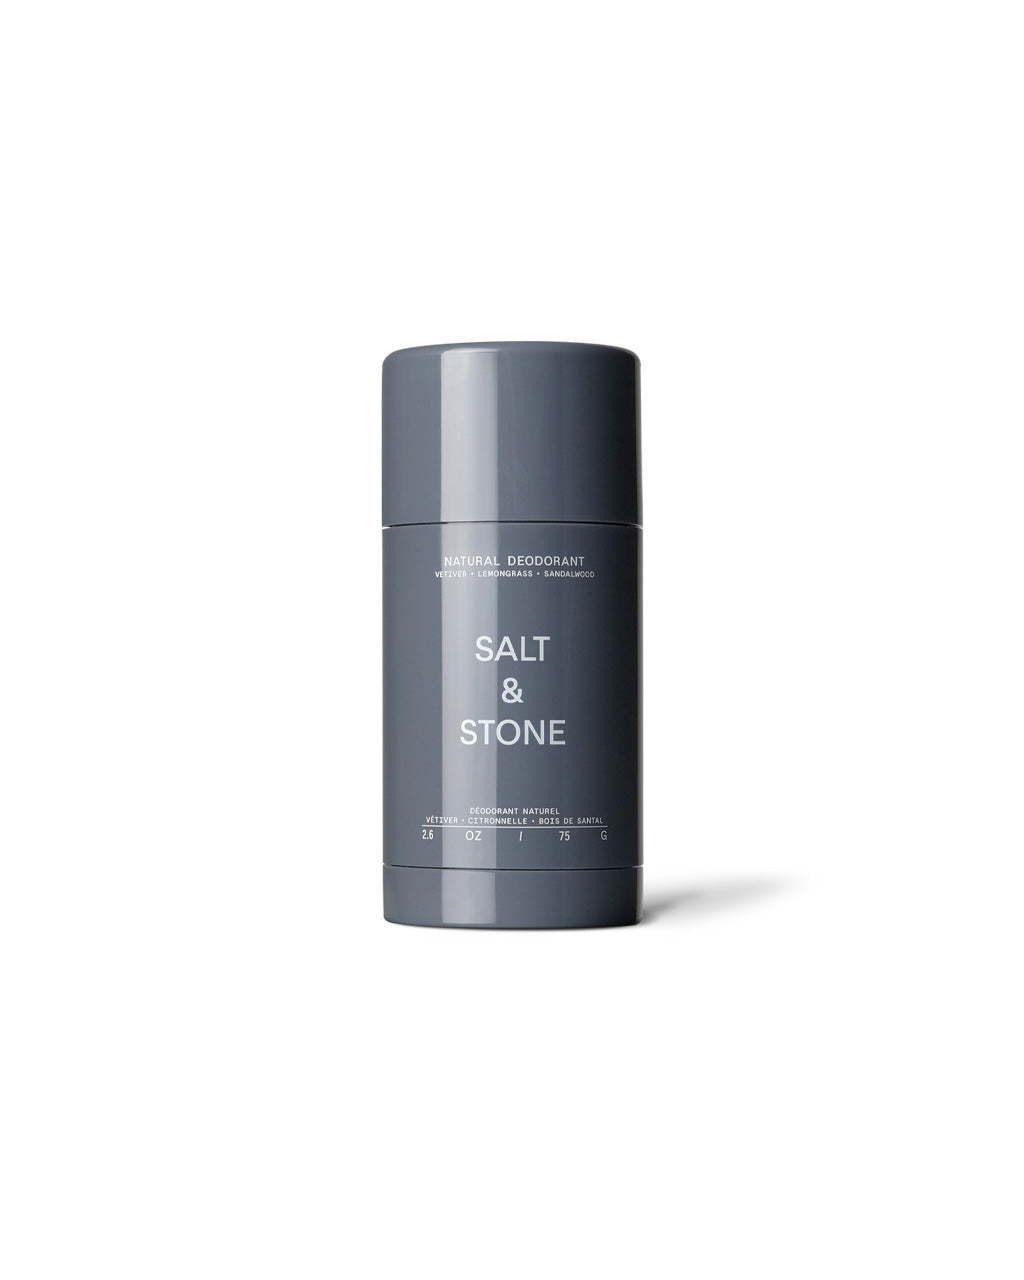 natural deodorant in a grey canister.